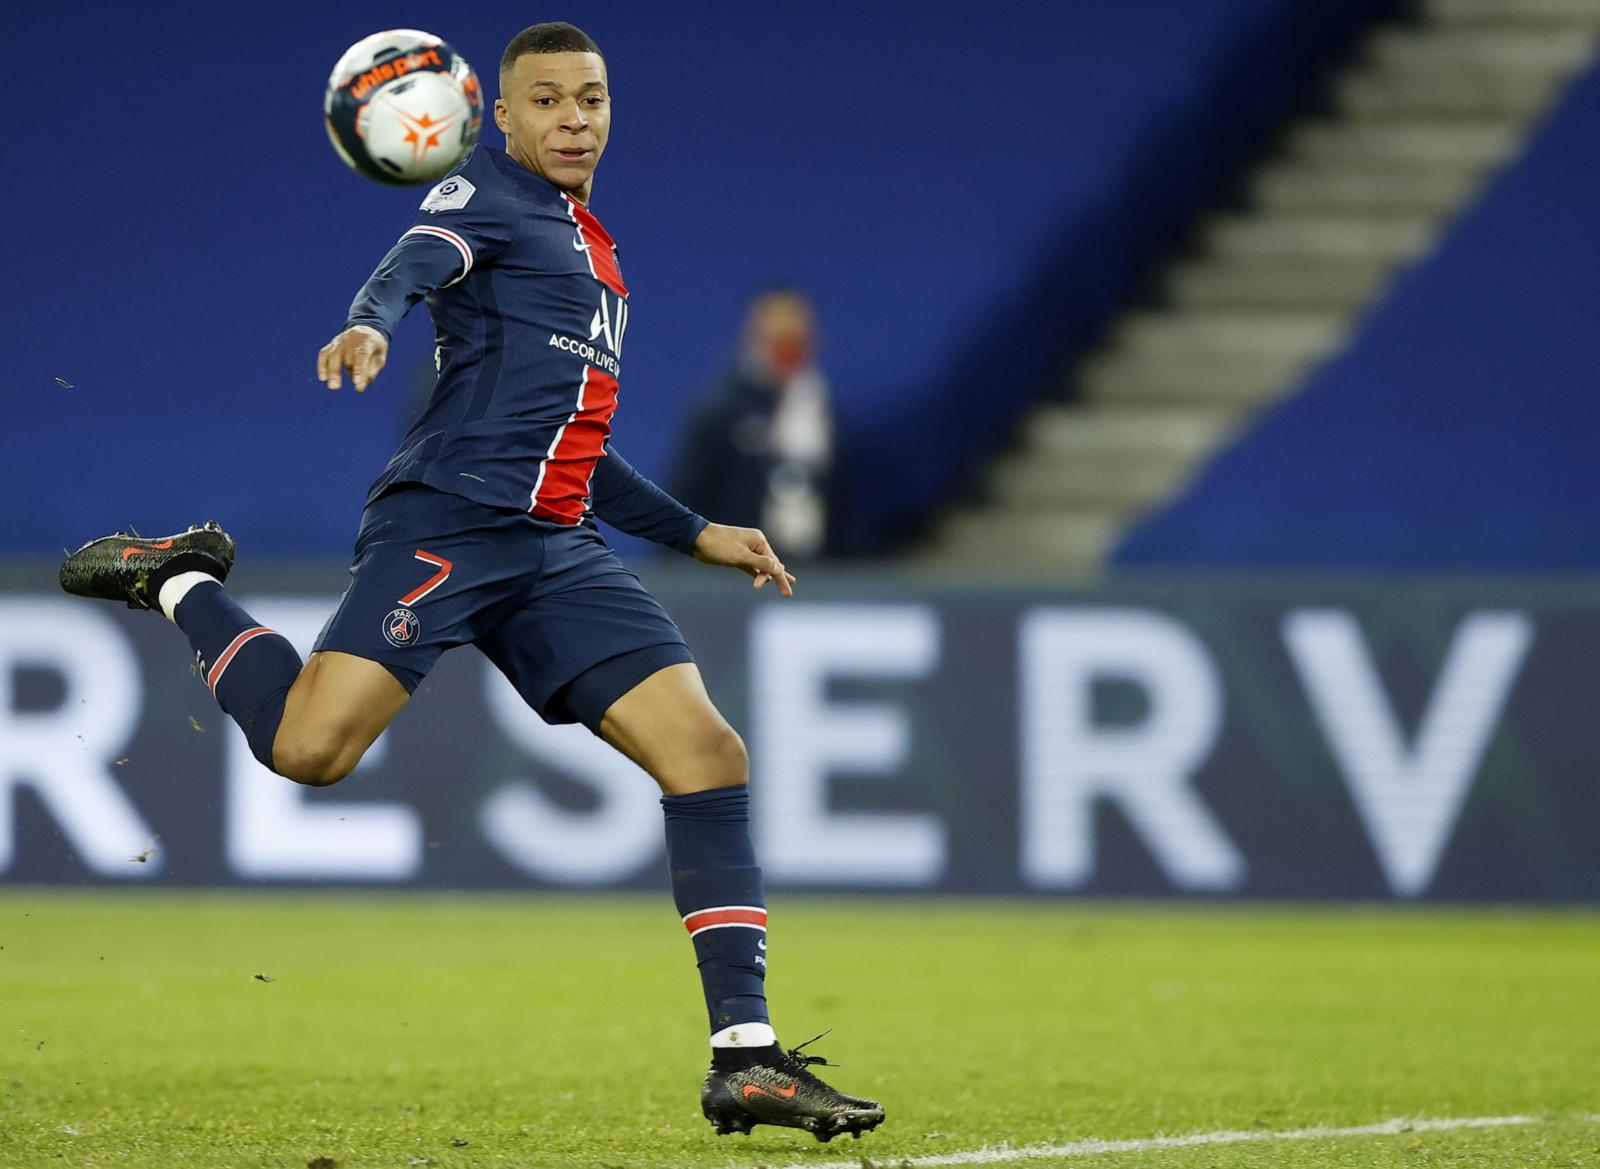 Ligue 1, Psg: poker al Montpellier, doppietta di Mbappé